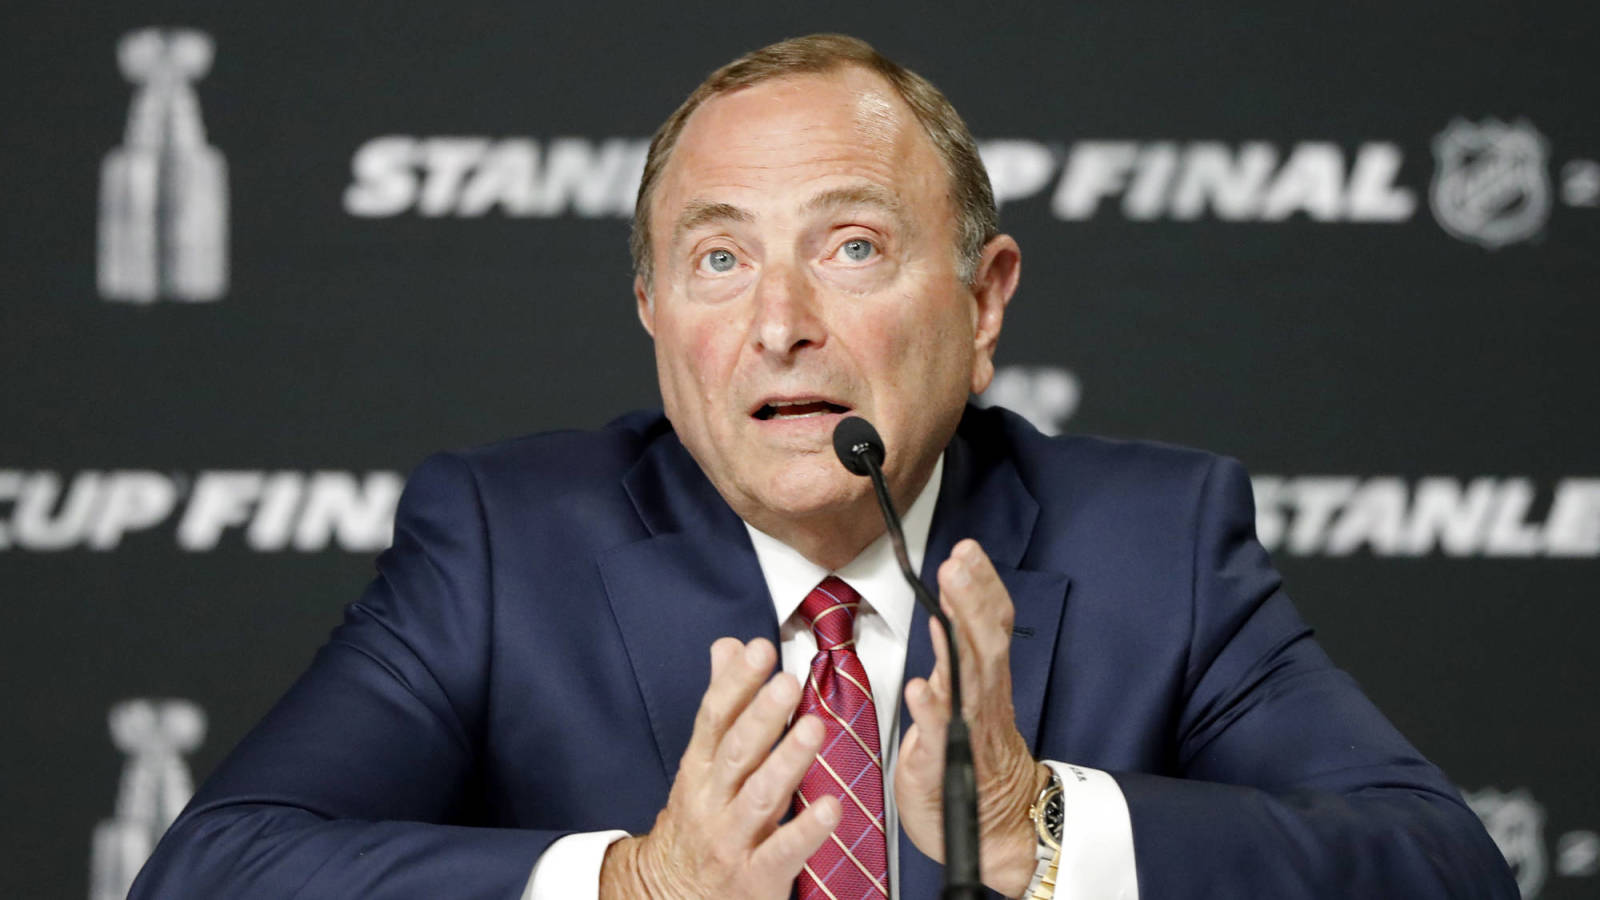 NHL reportedly aiming for full 82-game 2020-21 season